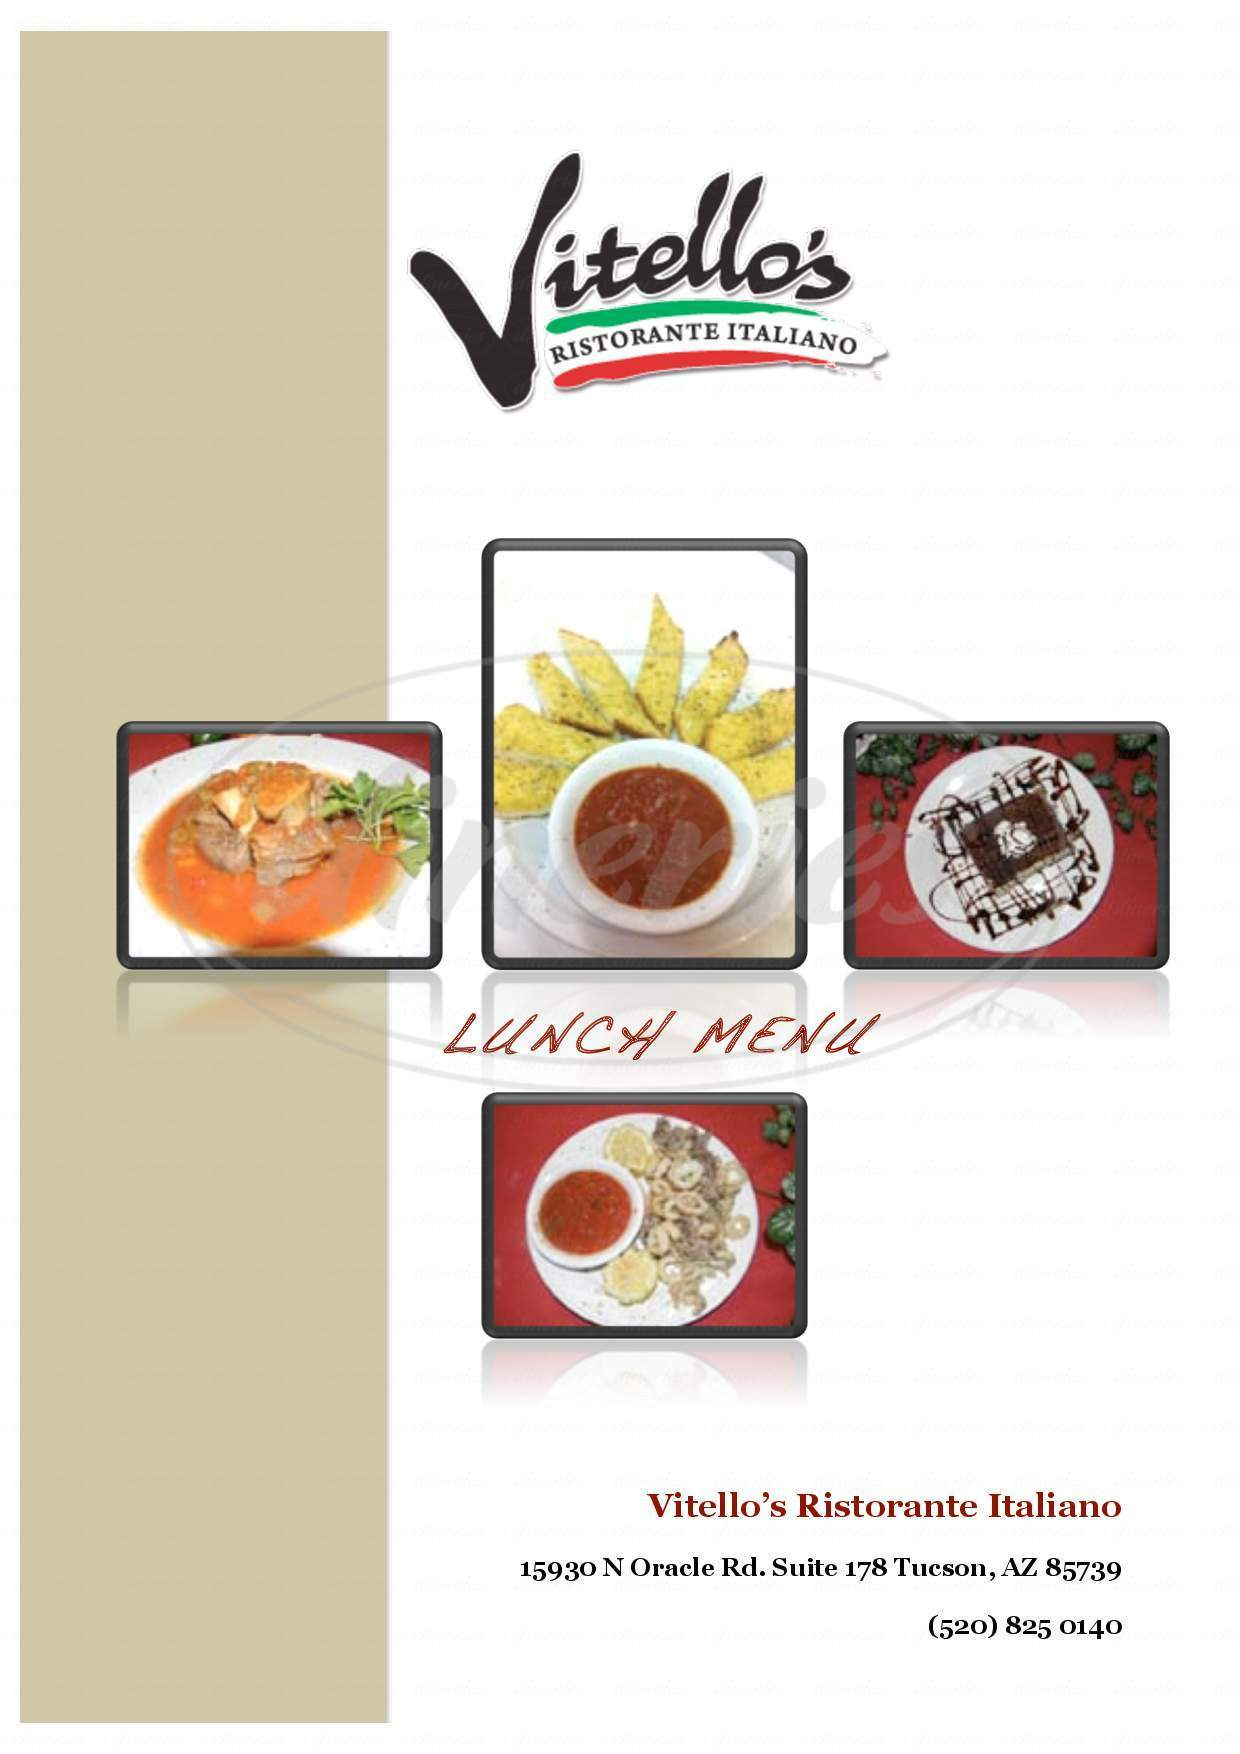 menu for Vitello's